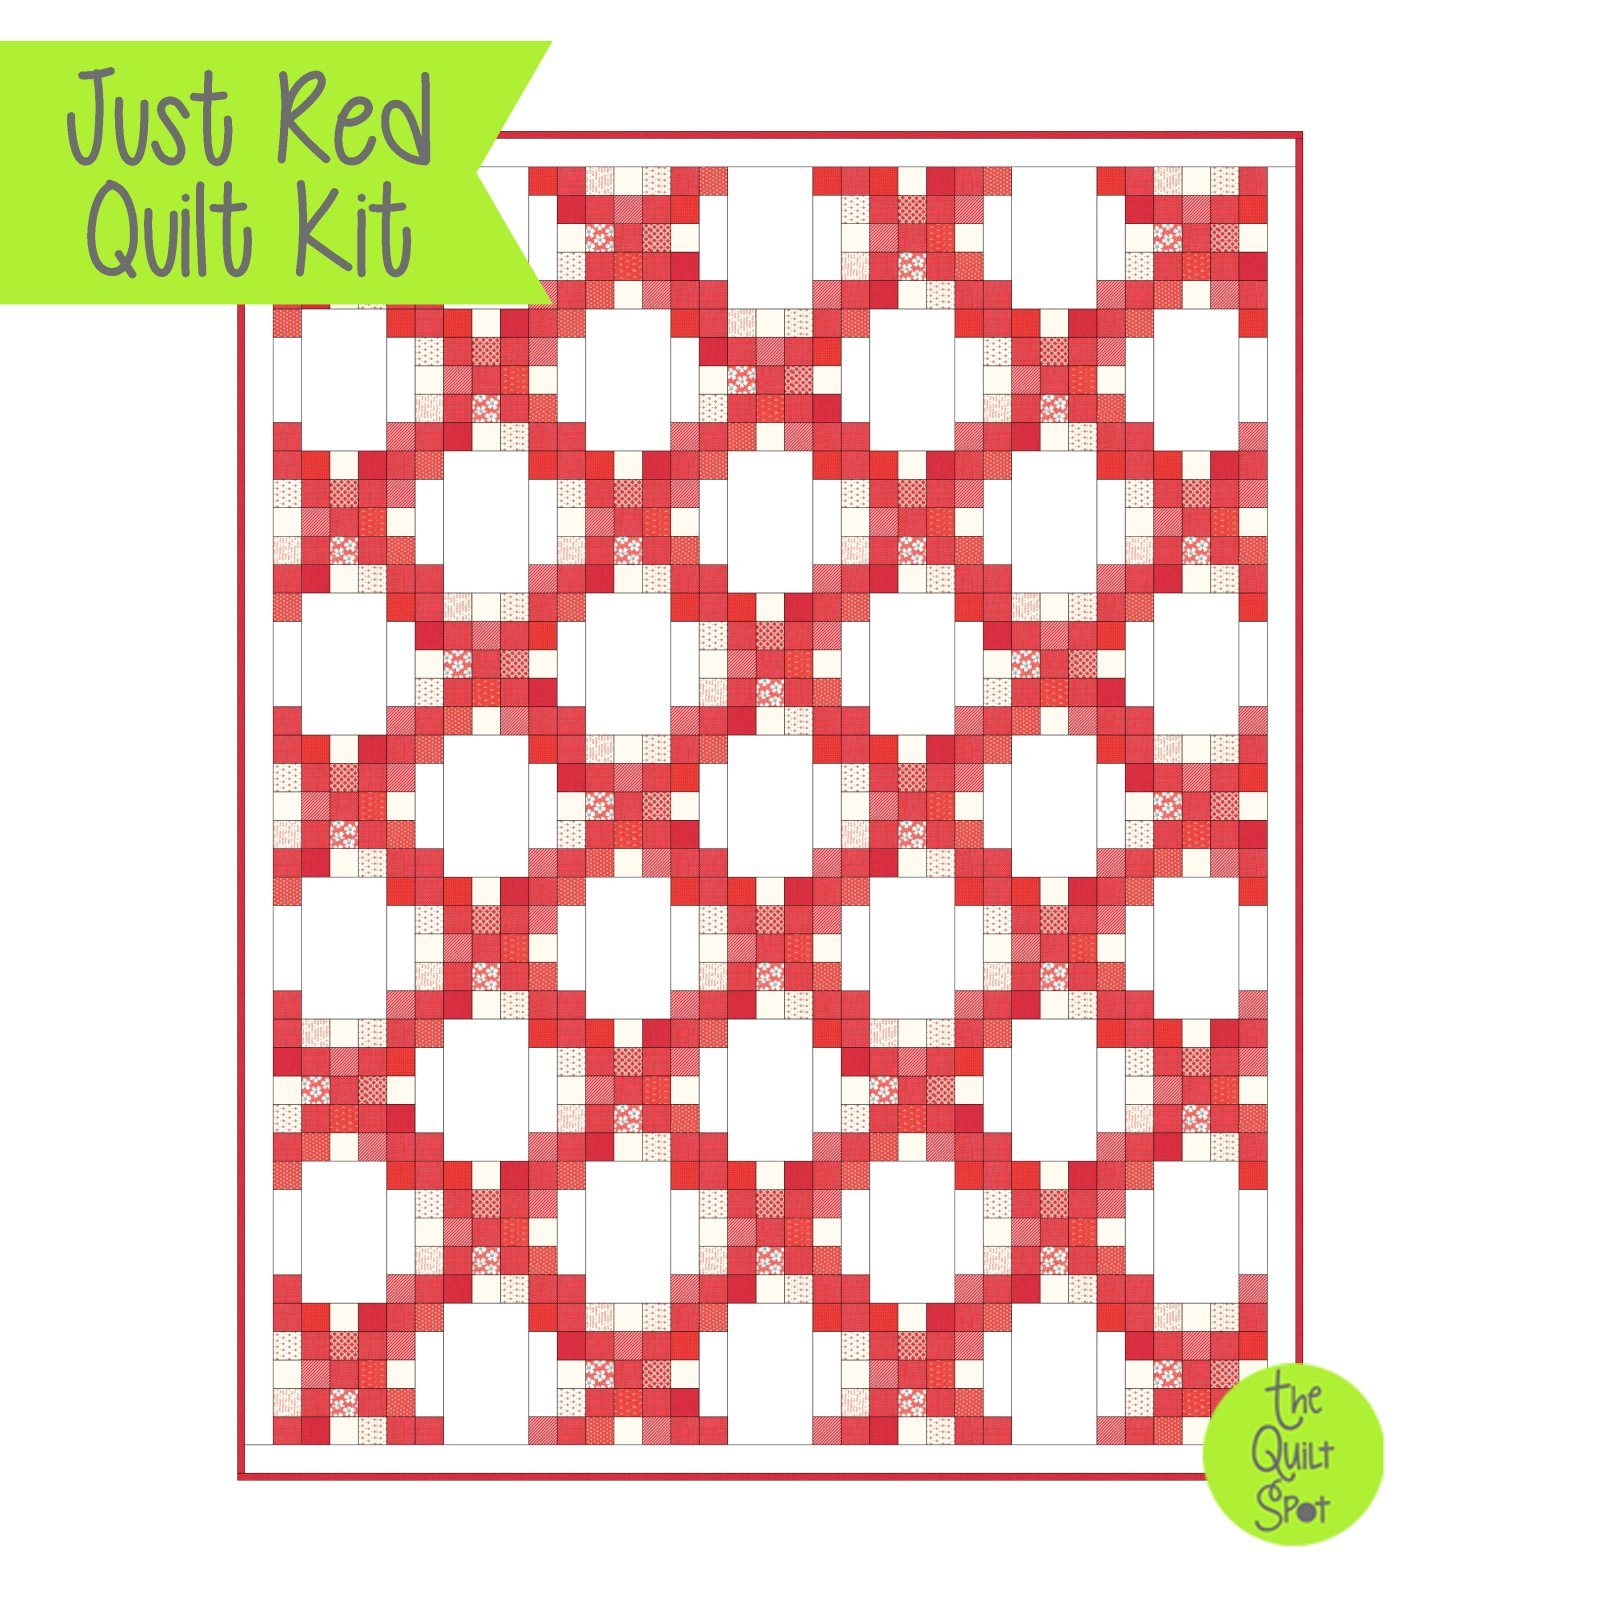 Just Red Quilt Kit